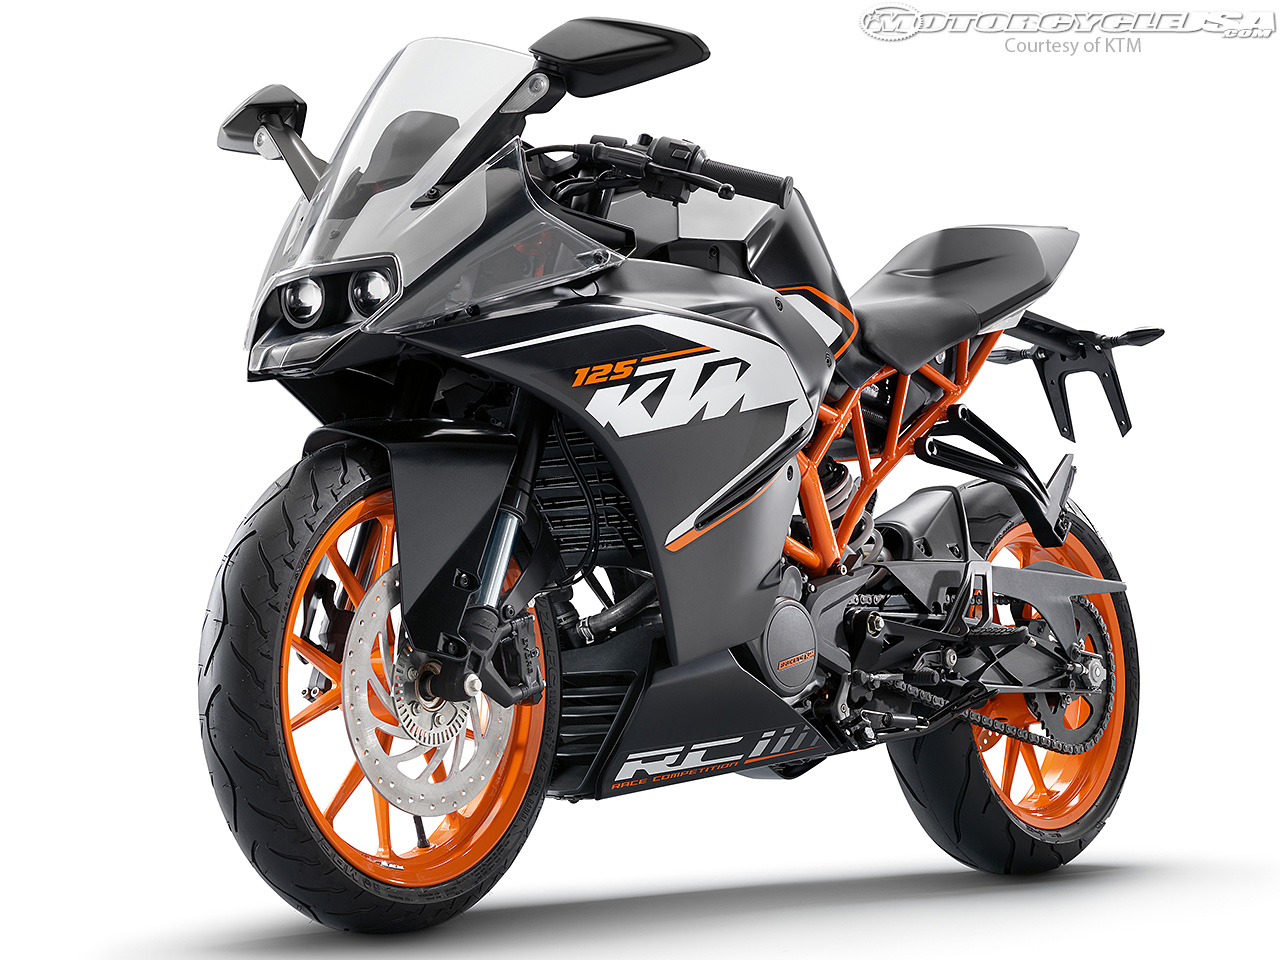 Ktm Rc 125 2019 1280x960 Wallpaper Teahub Io